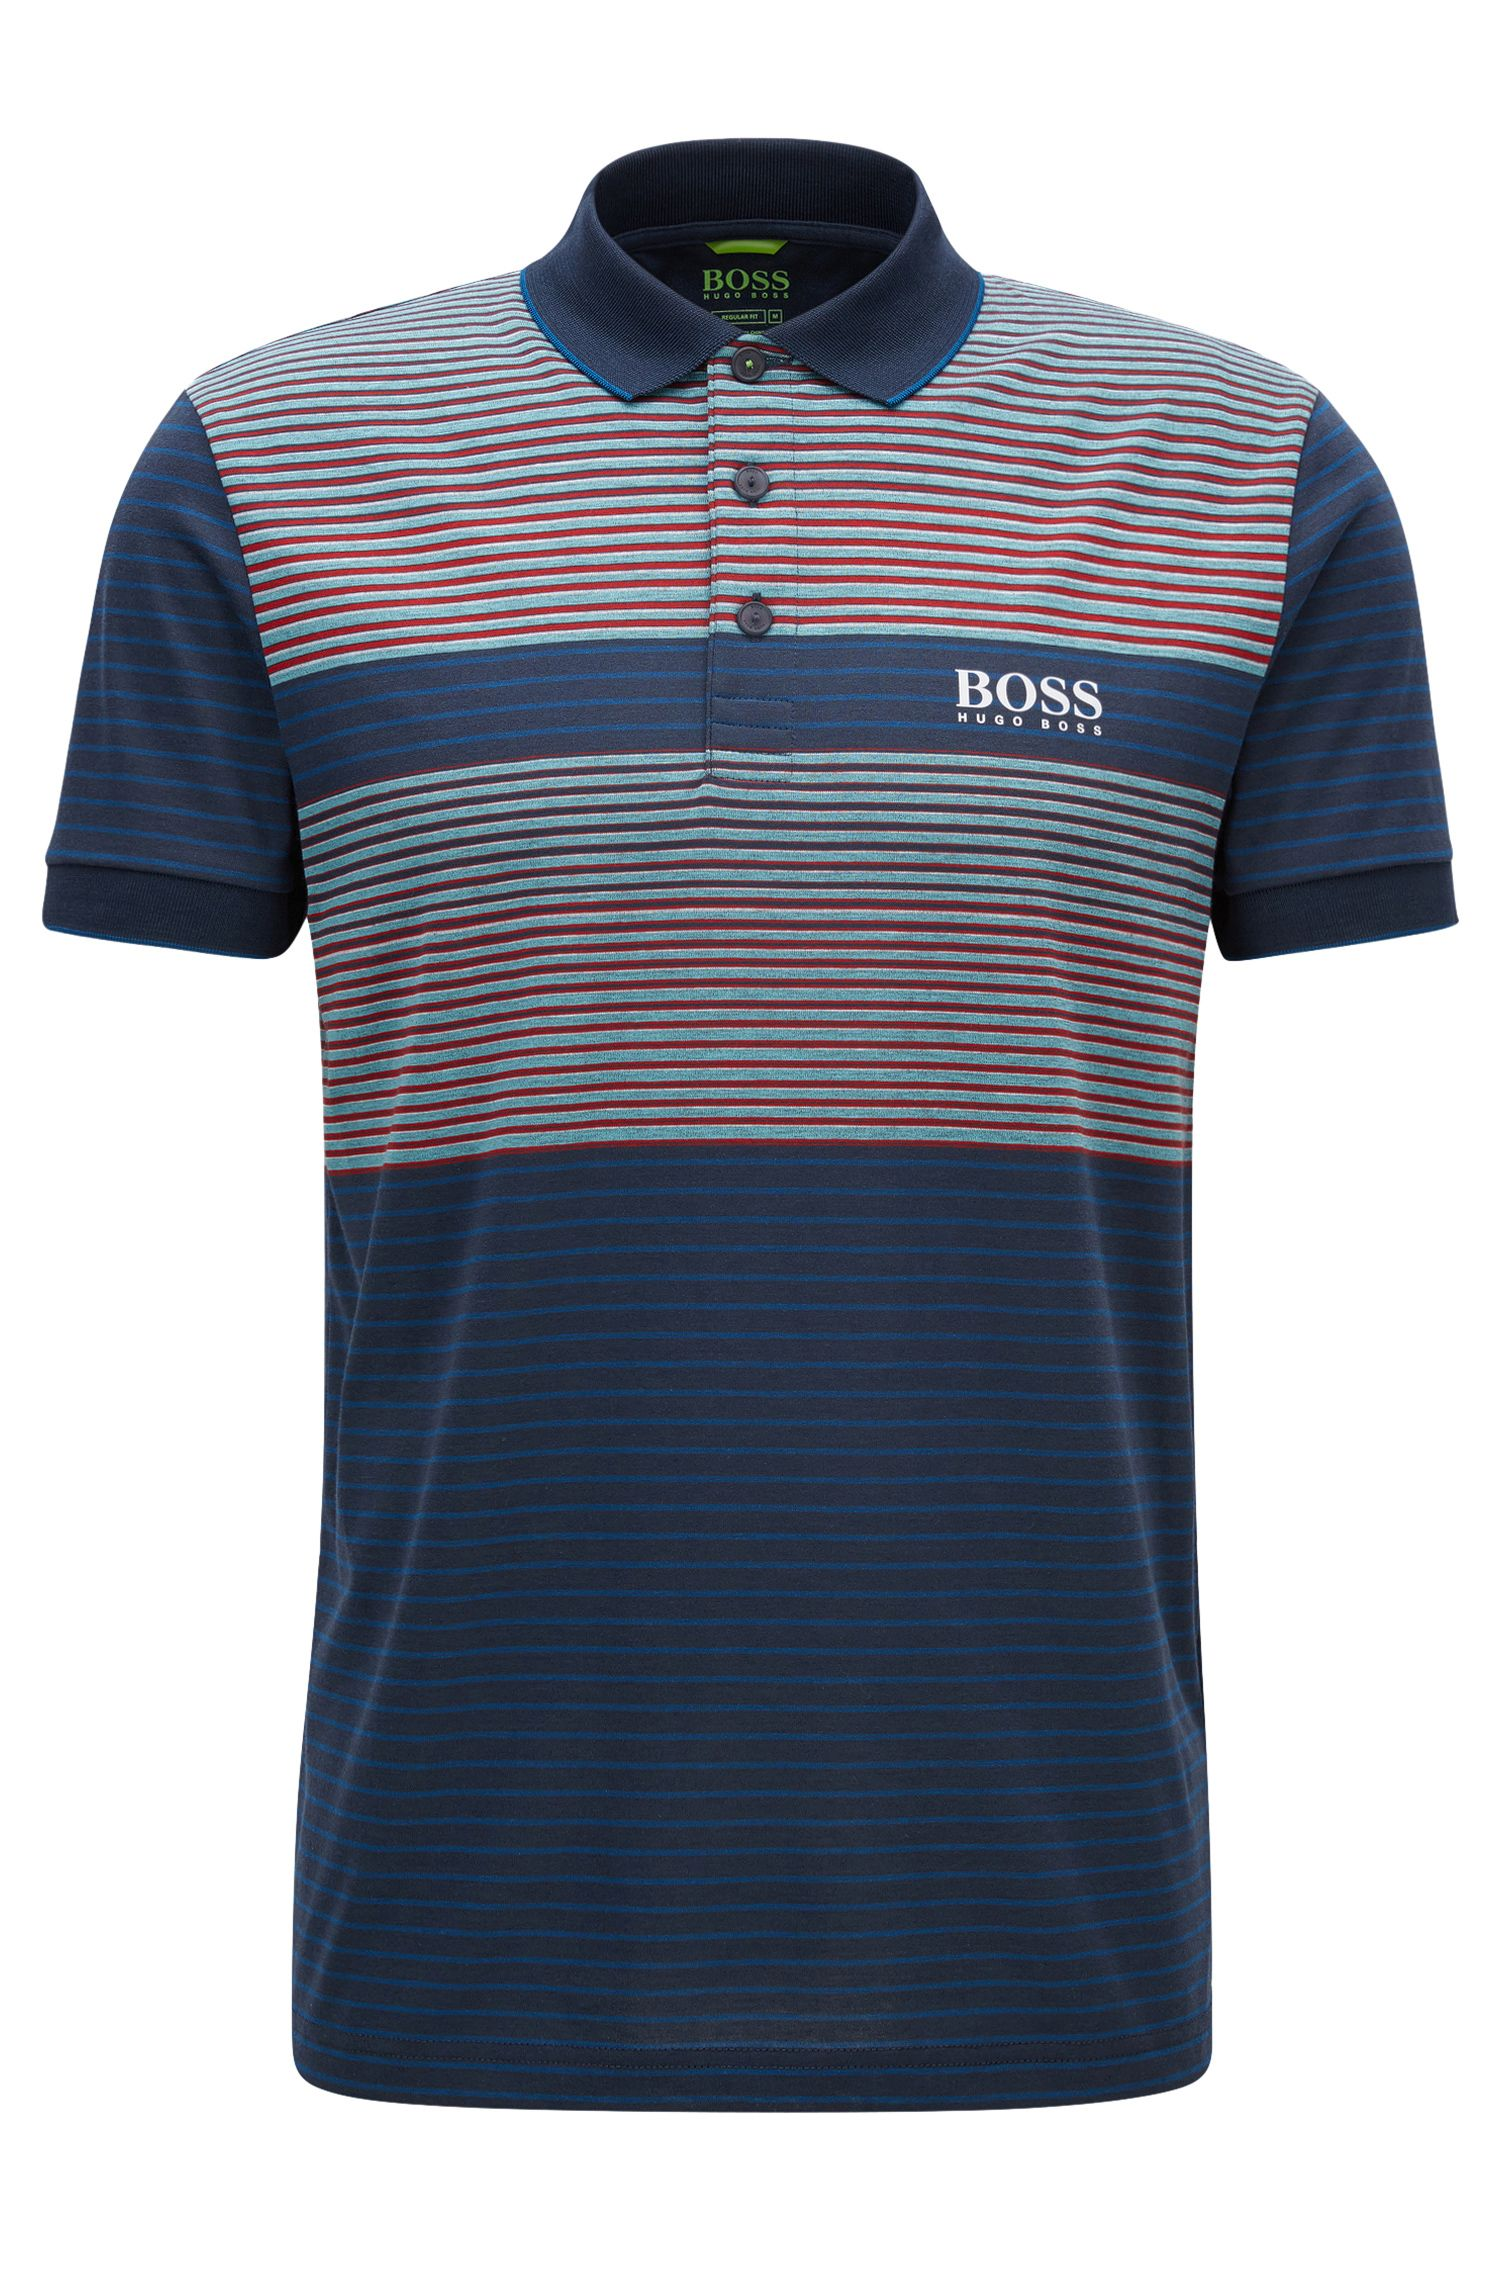 Regular-fit polo shirt in a technical fabric